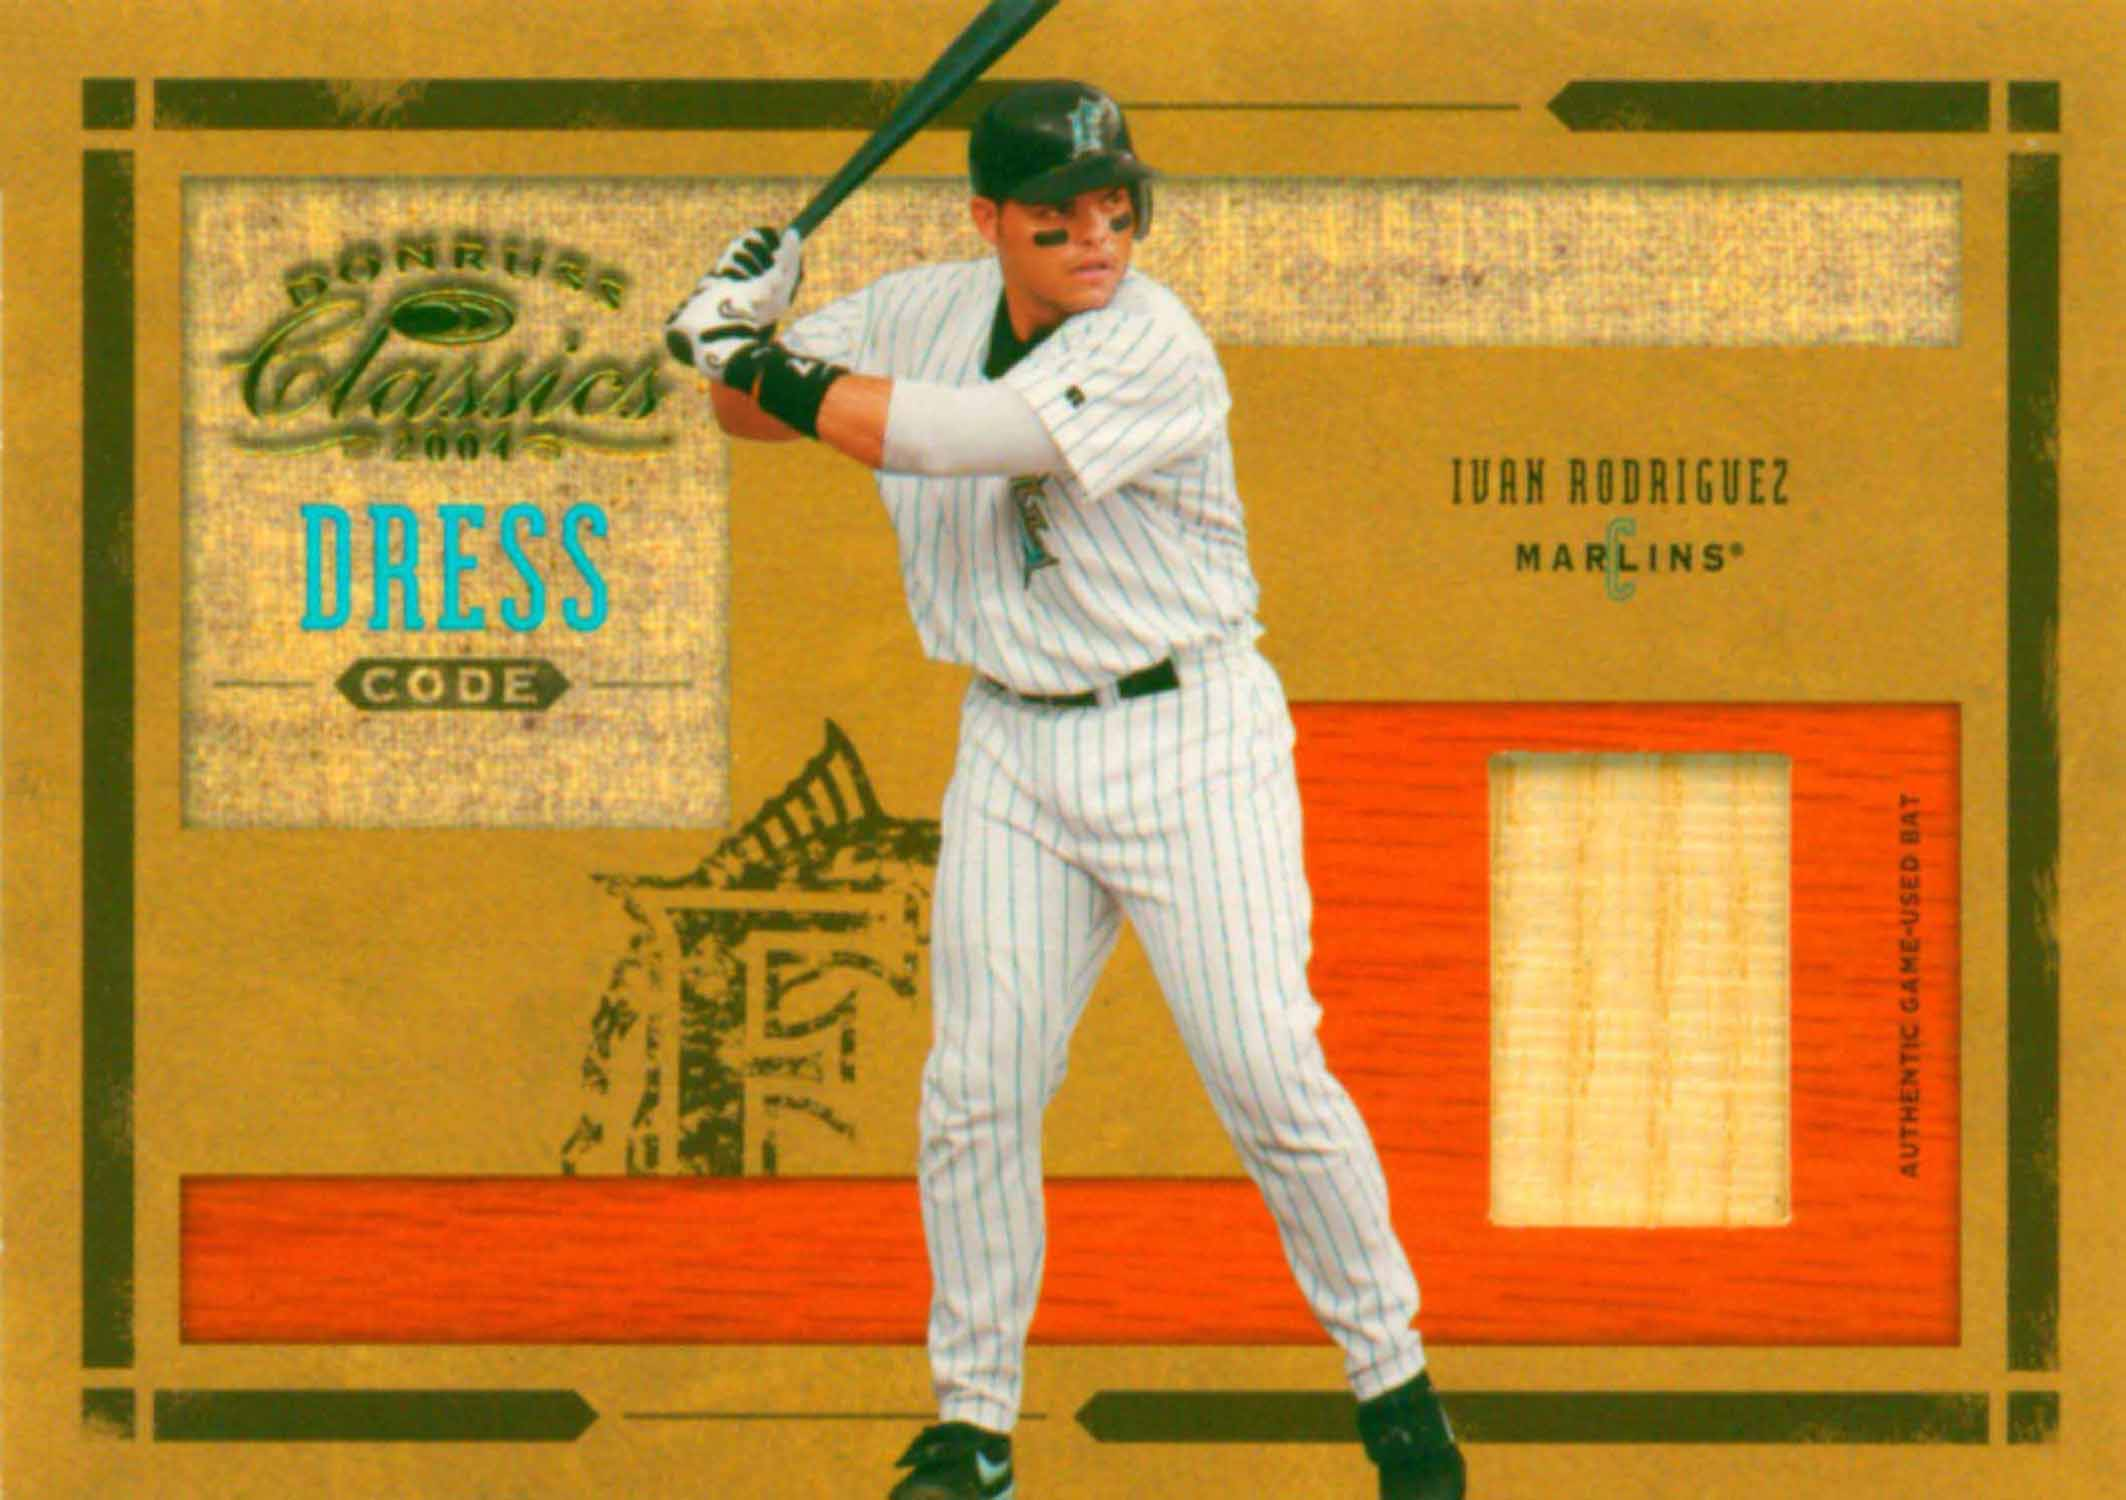 2003 Topps Tribute Contemporary Perennial All-Star Relics Bat